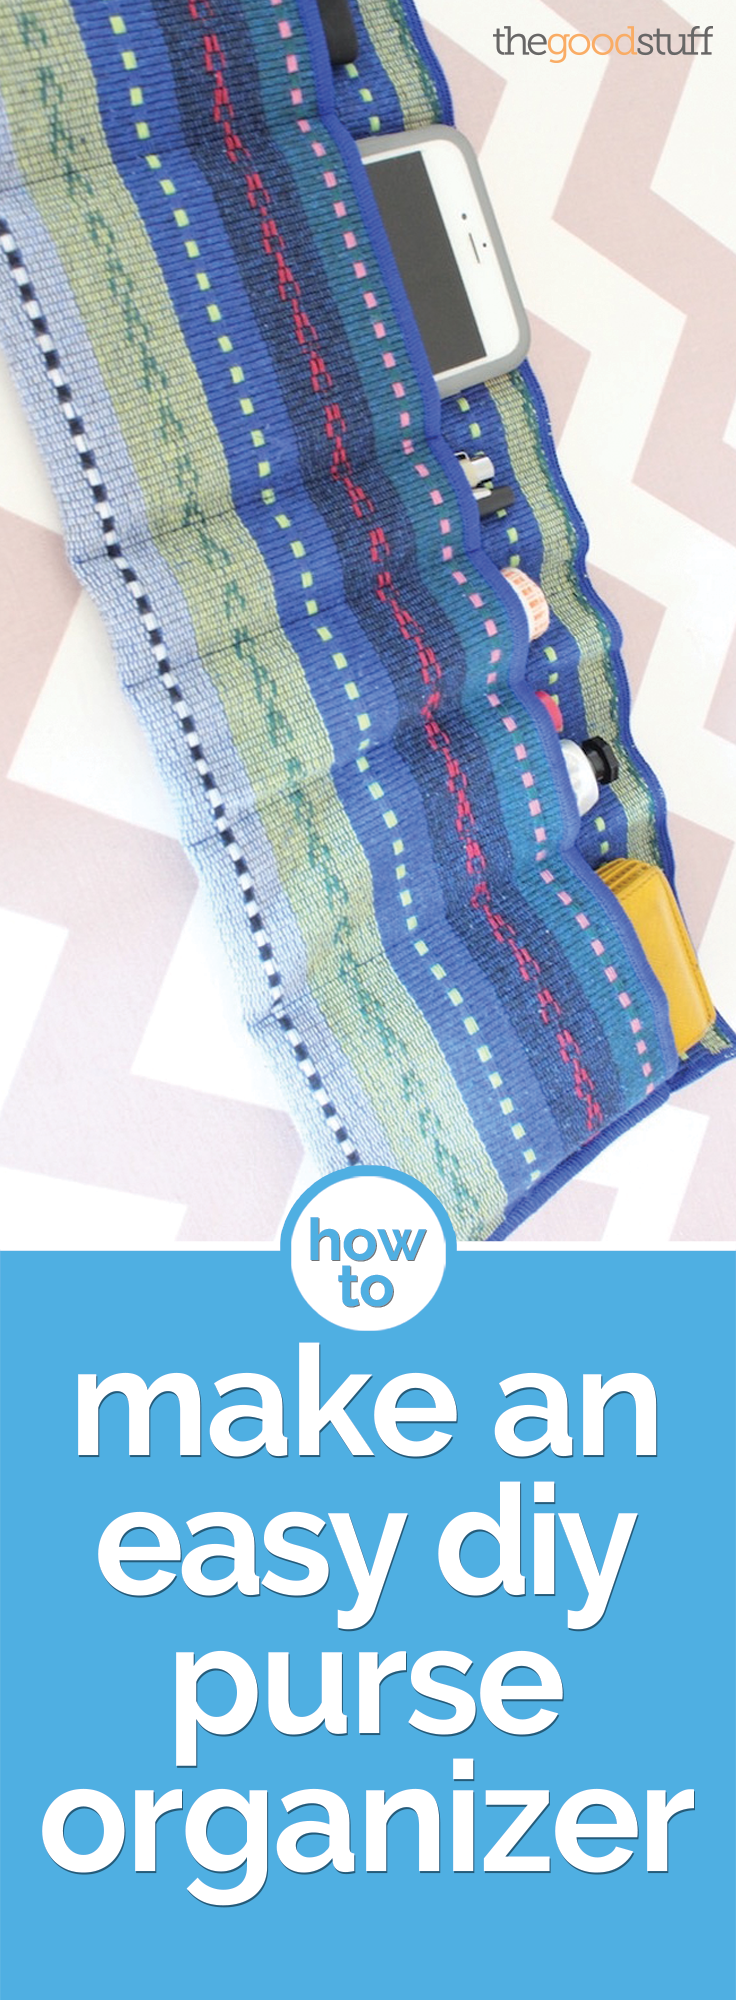 How to Make an Easy DIY Purse Organizer | thegoodstuff